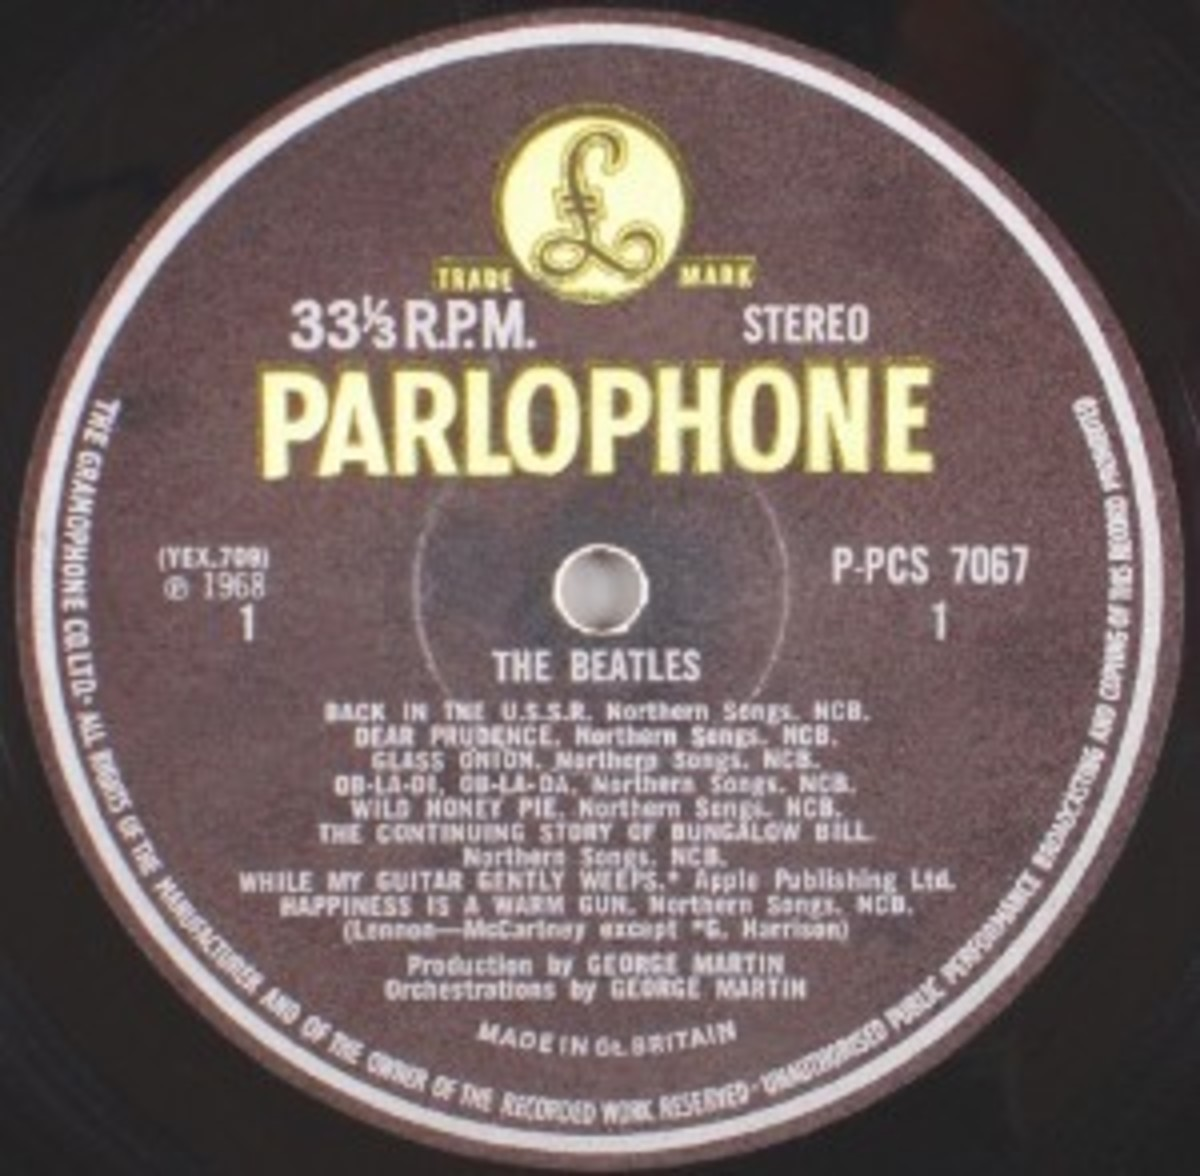 The Beatles (Parlophone P-PCS 7067)